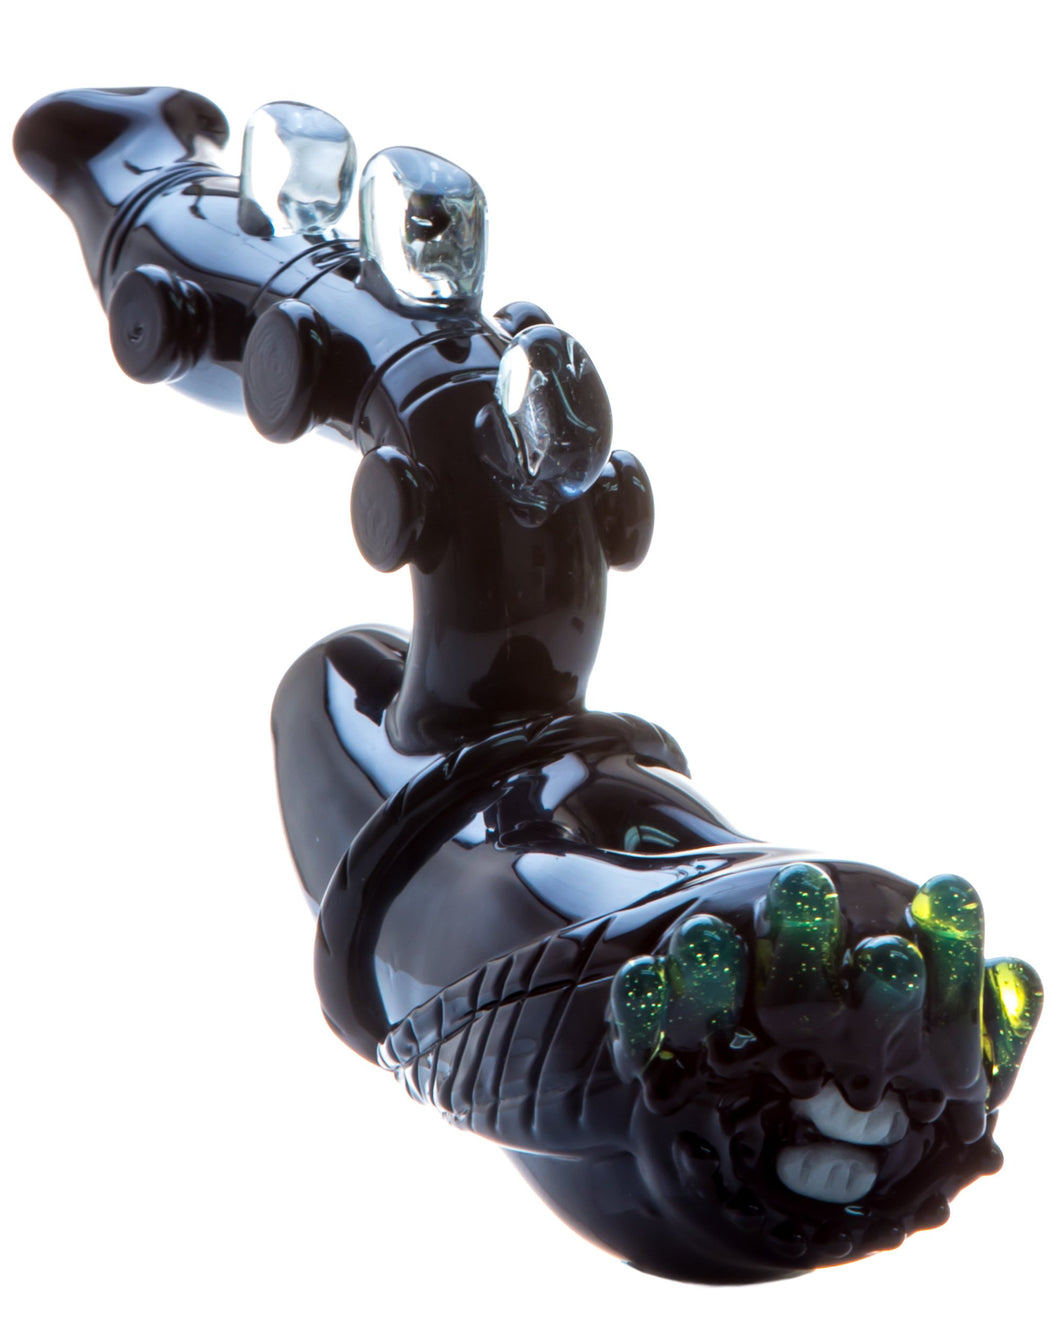 Alien Themed Hand Pipe with Slyme Accents for $79.99 at Weedcommerce Marketplace